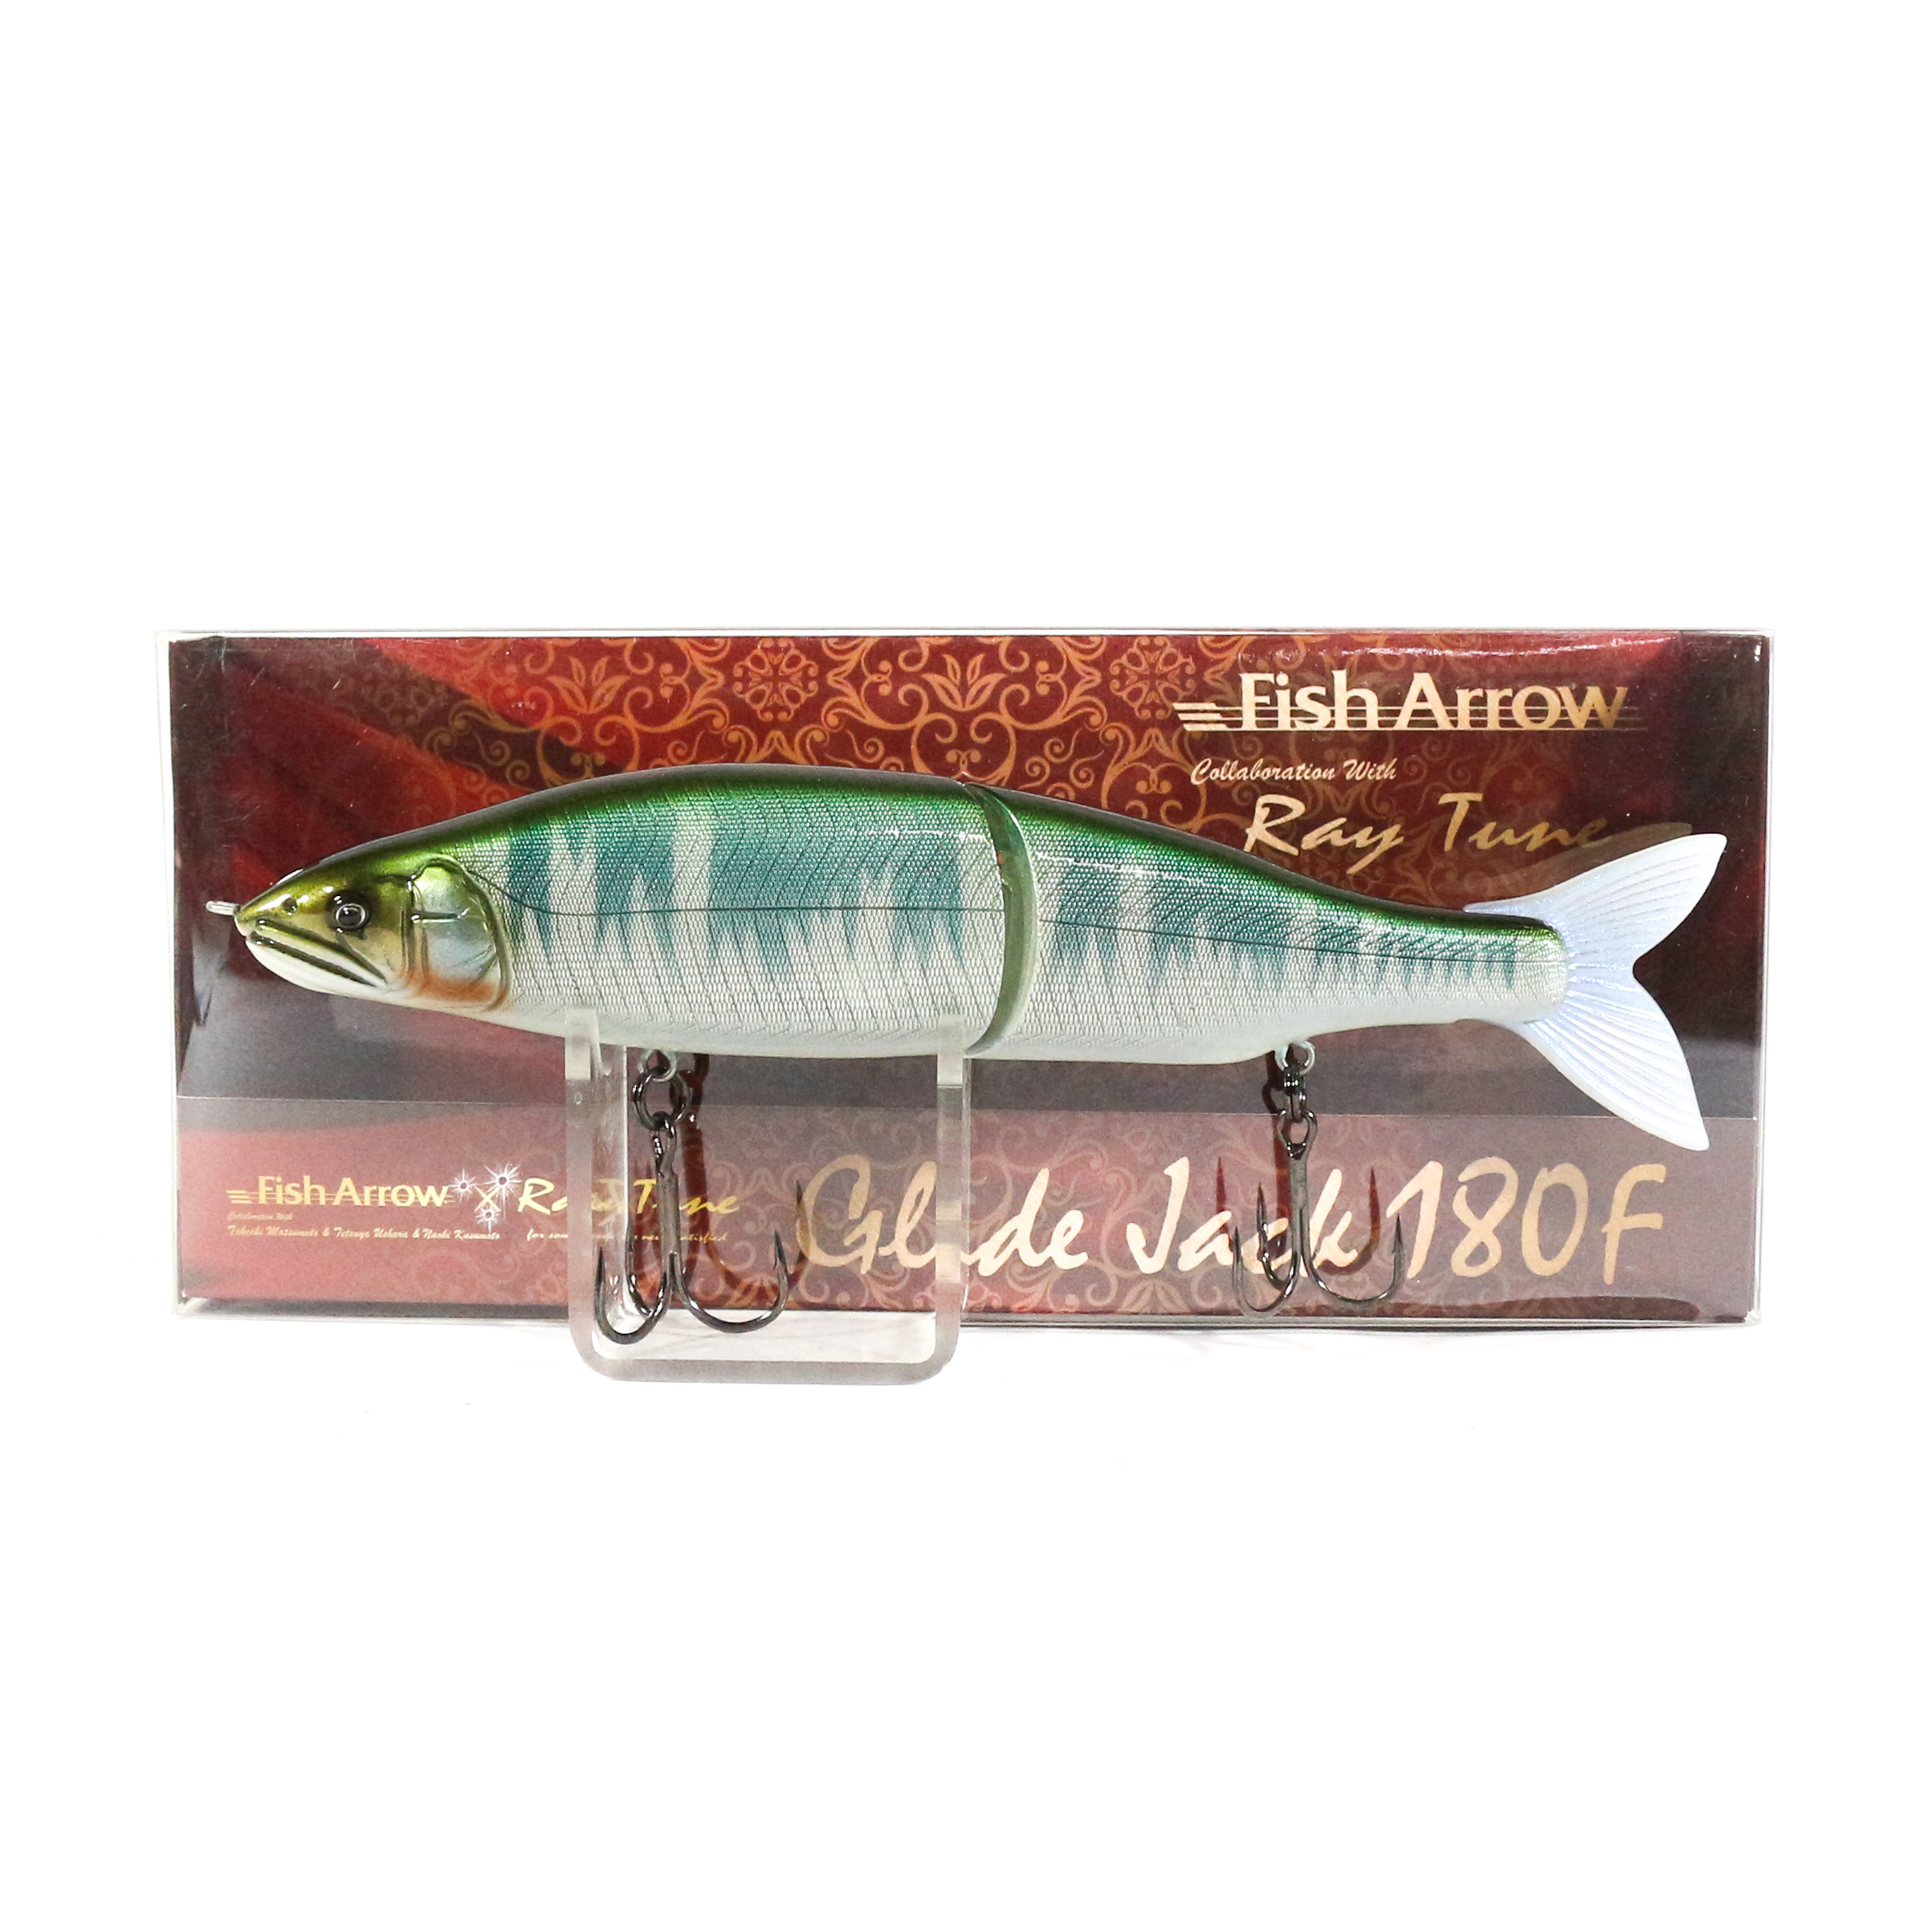 Fish Arrow Glide Jack 180F 57 grams Floating Lure #04 (2329)